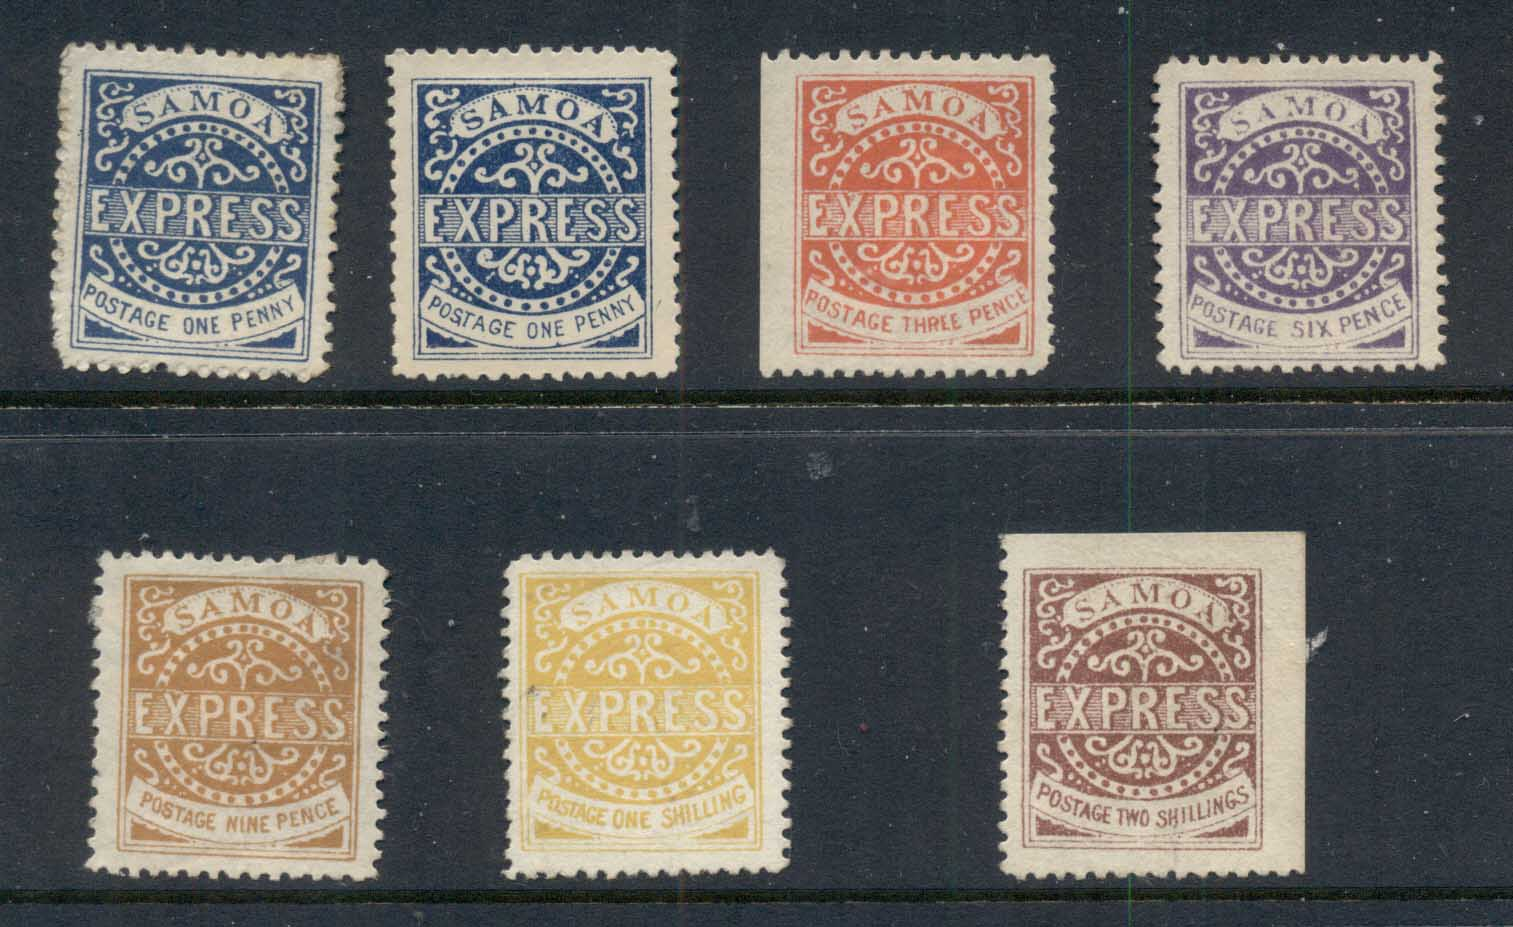 Samoa 1877-82 Samoa Express Reprints MLH/MUH